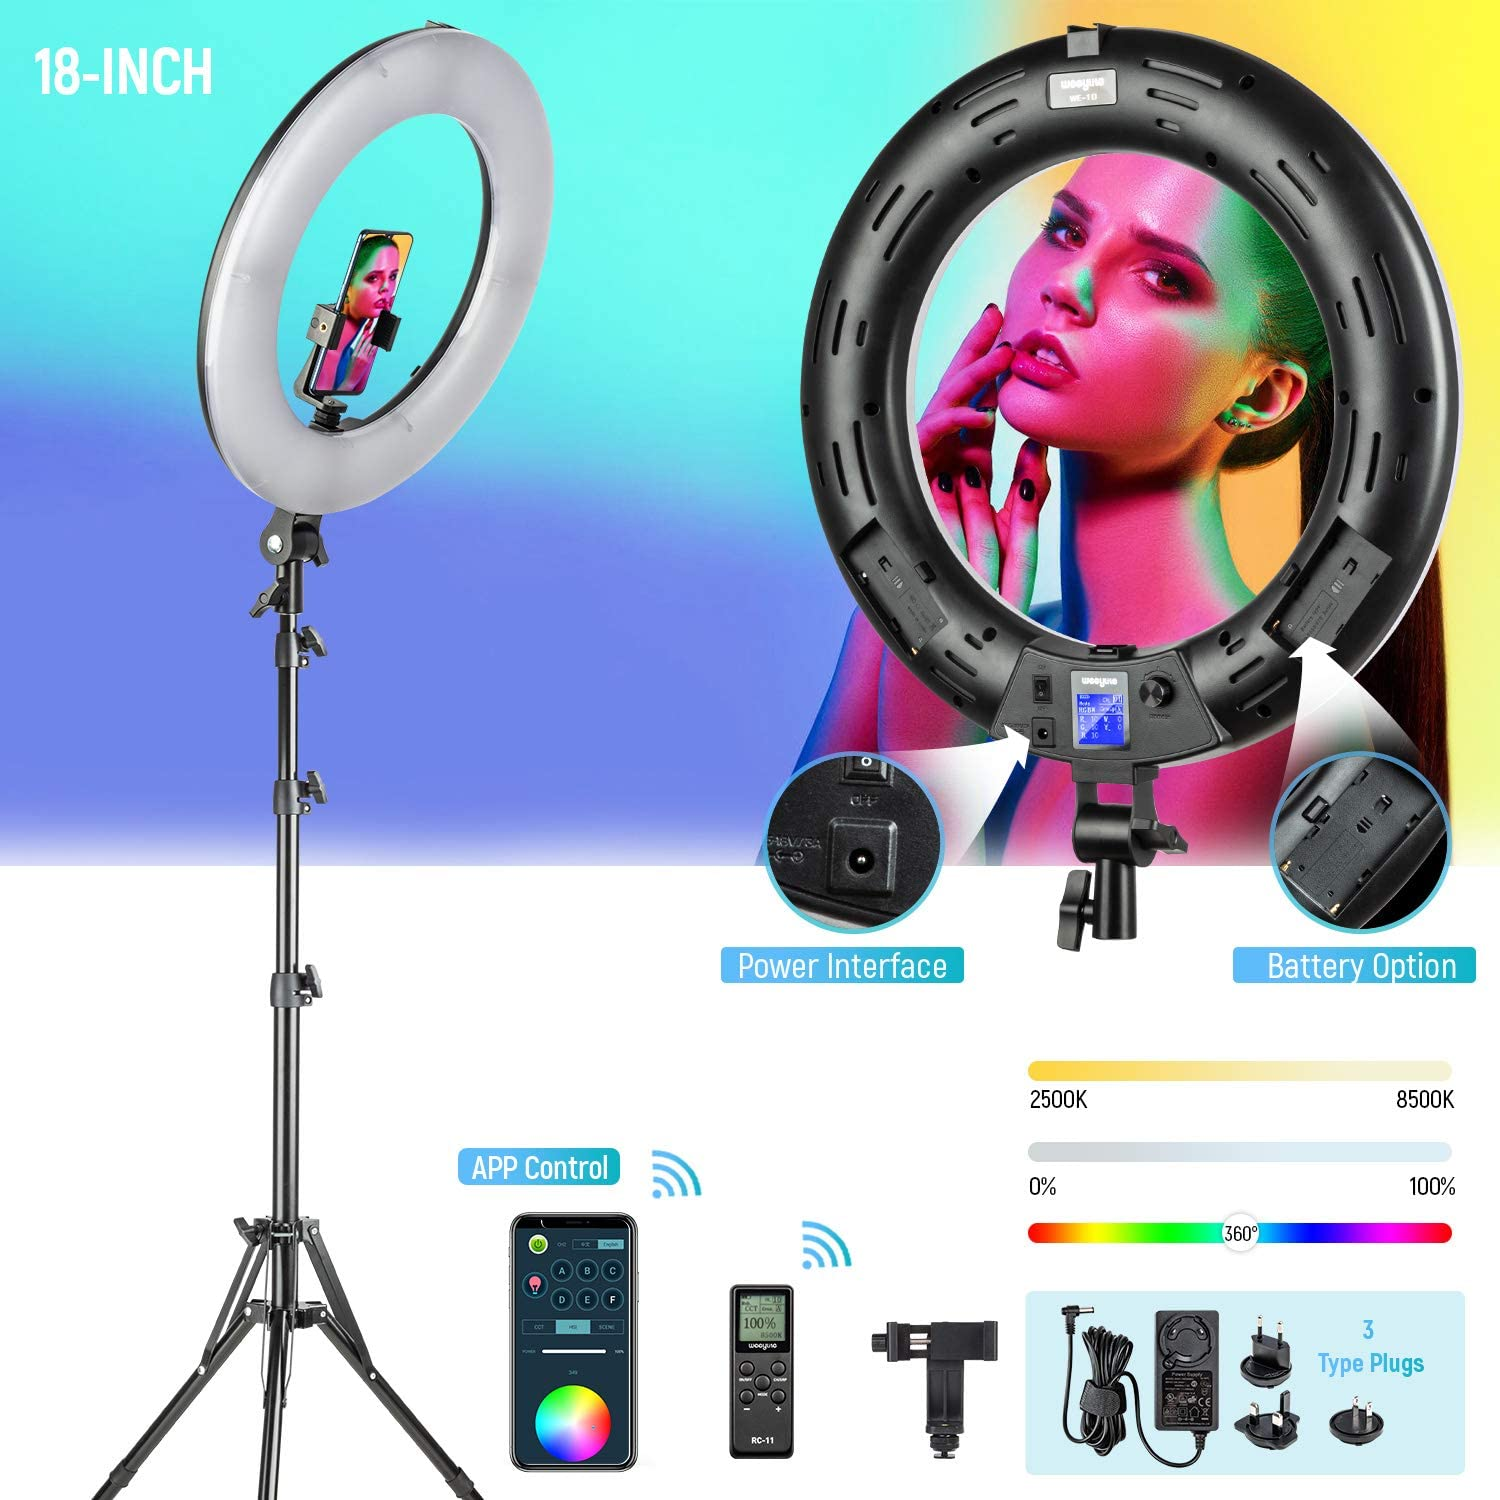 RGB LED Ring Light with Stand/Phone Holder/Remote Controller/APP Control, 18-inch Dimmable Bi-Color 2500K-8500K CRI95 with 17 Special Scenes 3 Type Plugs DC Adapter for Makeup Selfie Video Photography